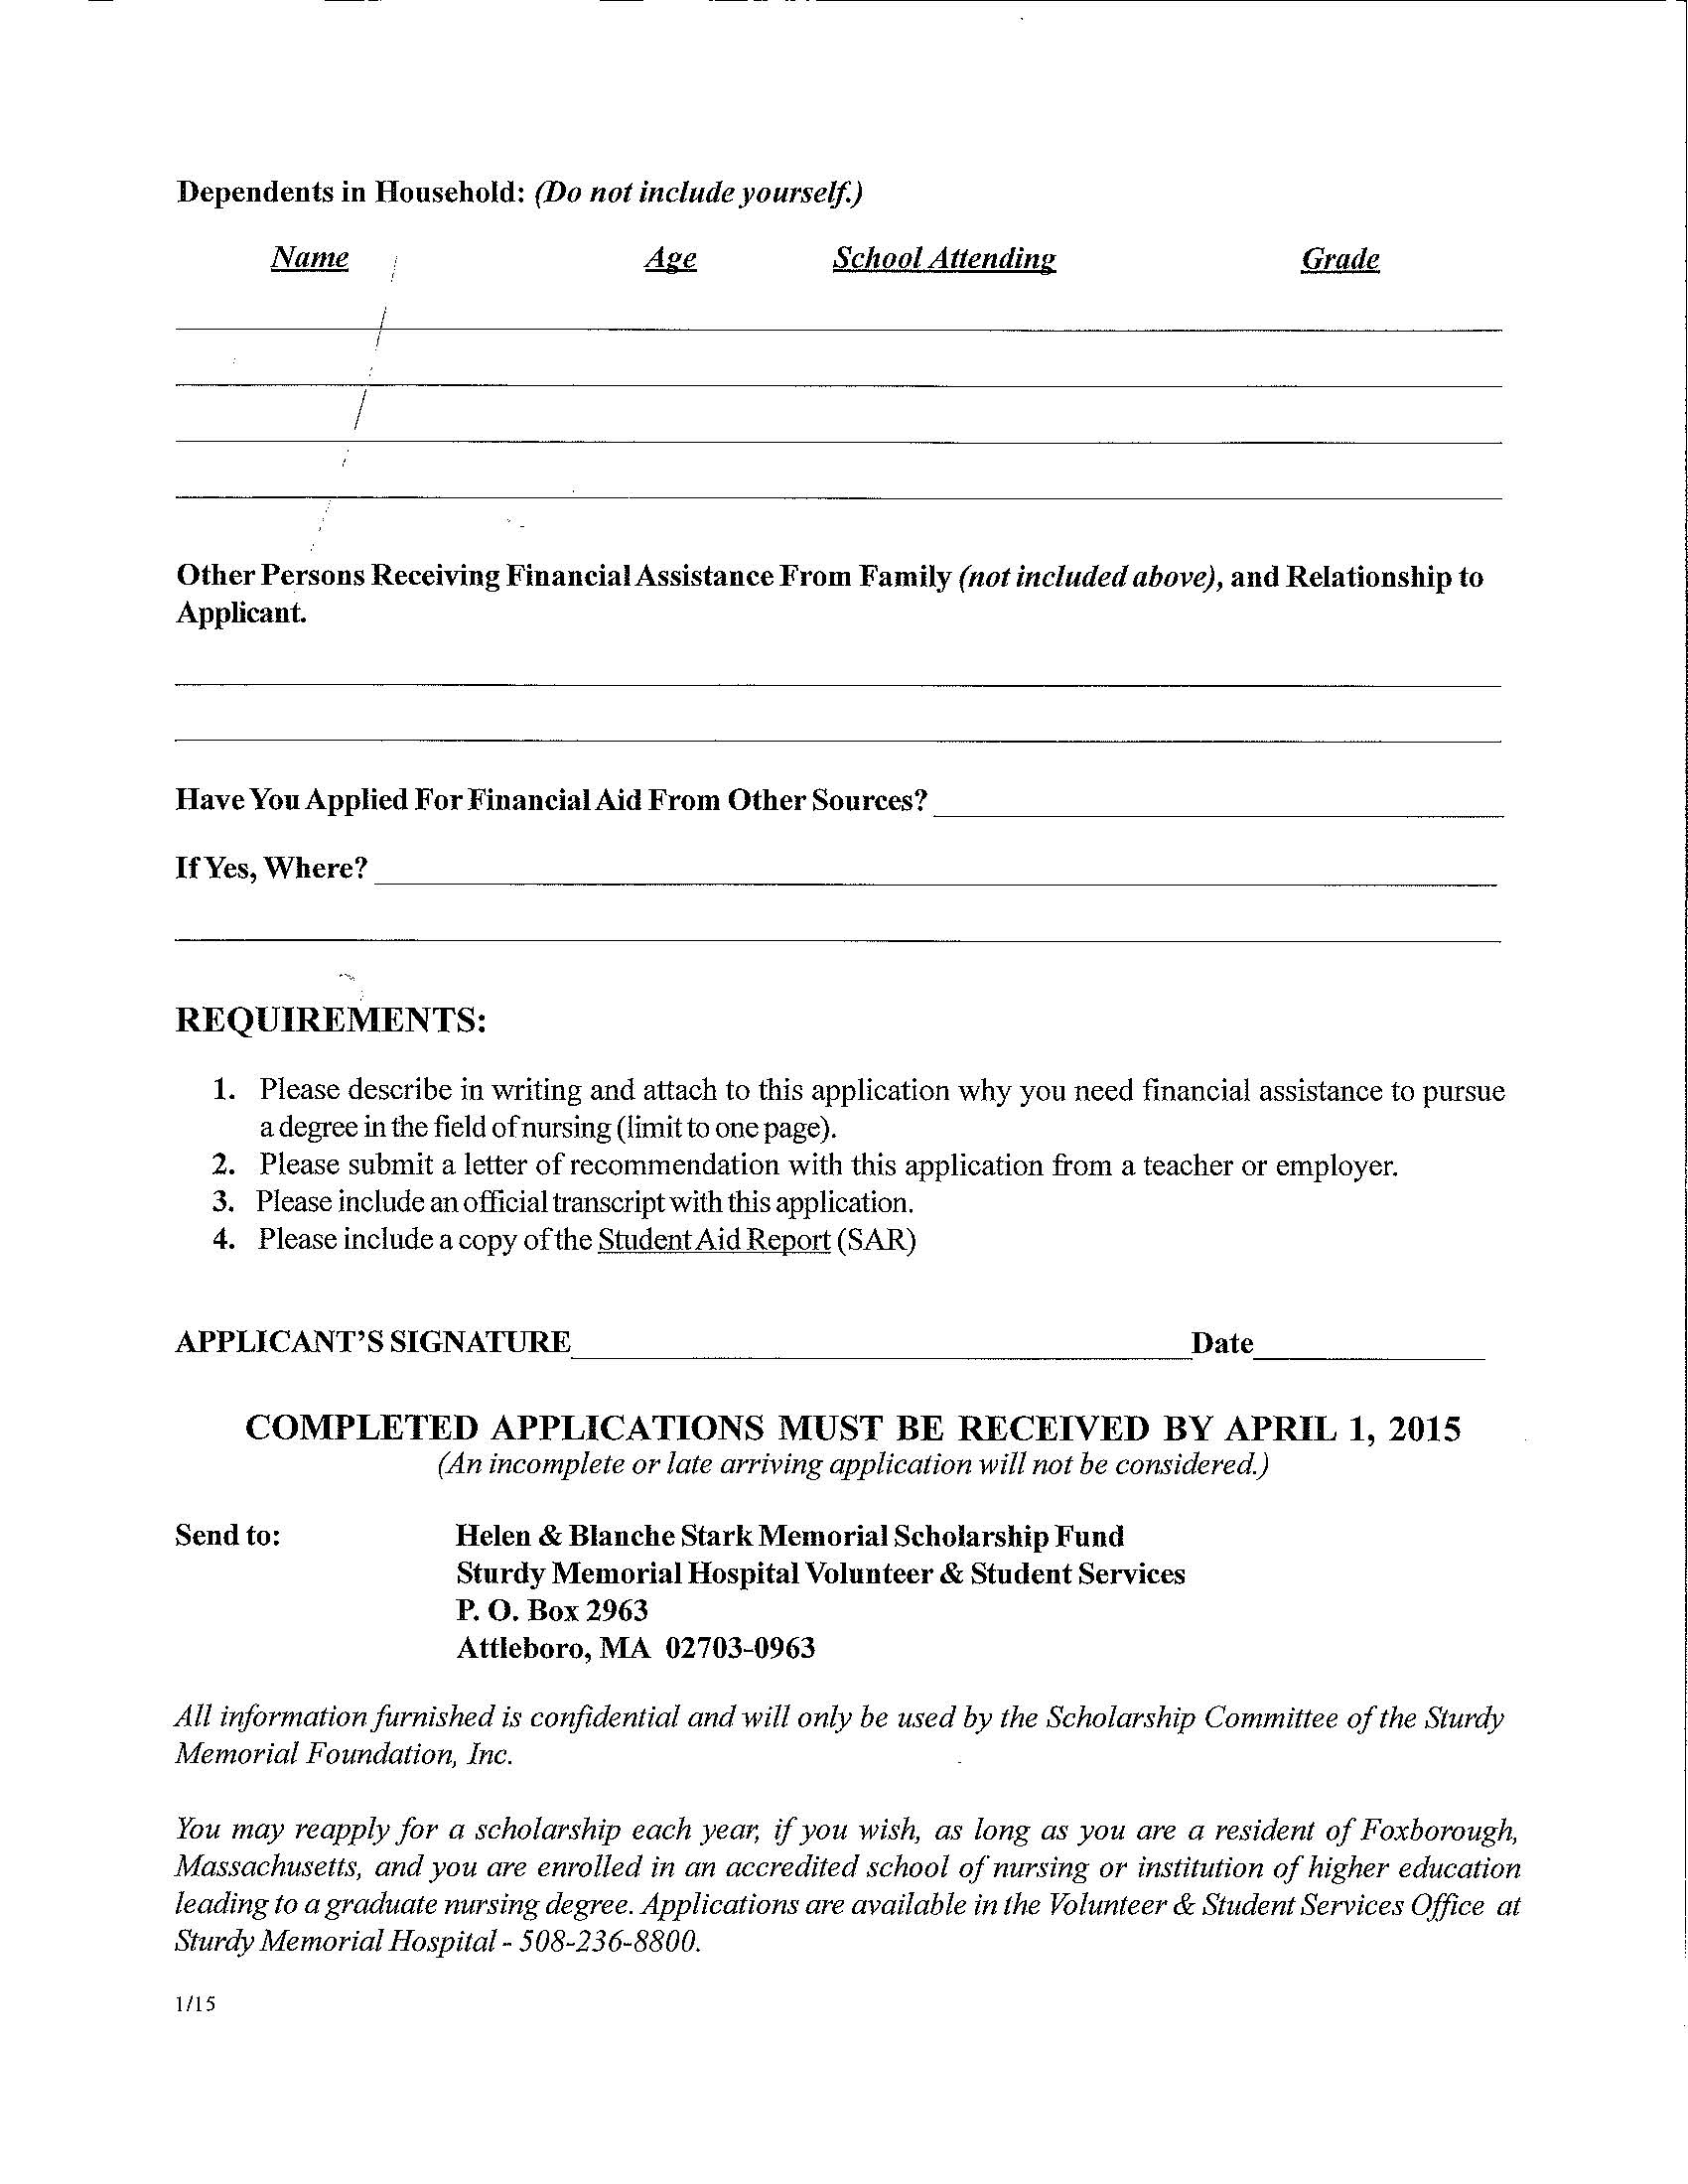 016 Essay Example Descriptive Thesis Helen Blanche Stark Memorial Scholarship Fund Application Page 2 Rare Statement Generator Pdf Full